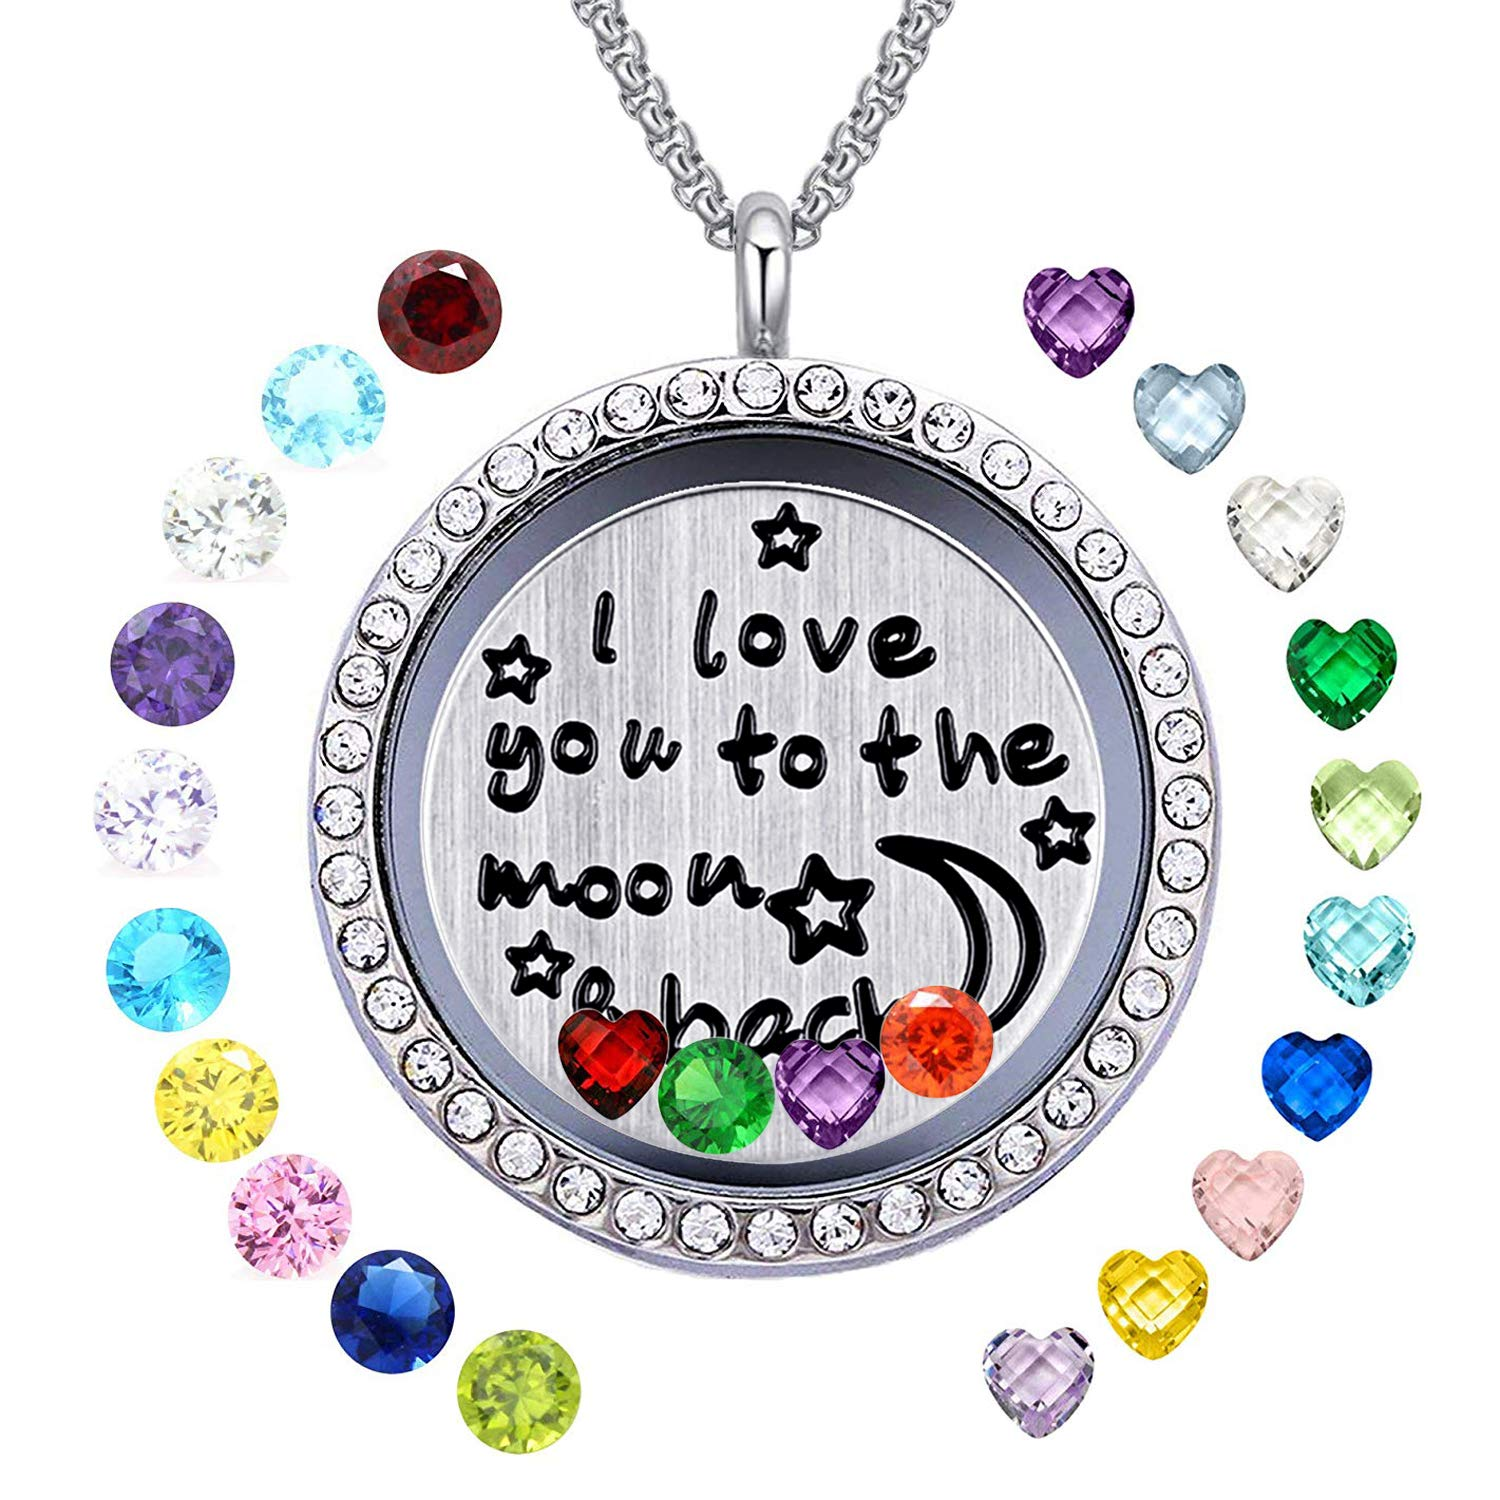 YOUFENG Floating Living Memory Locket Pendant Necklace Family Tree of Life Necklace All Birthstone Charms Include Moon Back 24 Birthstones CZ Locket